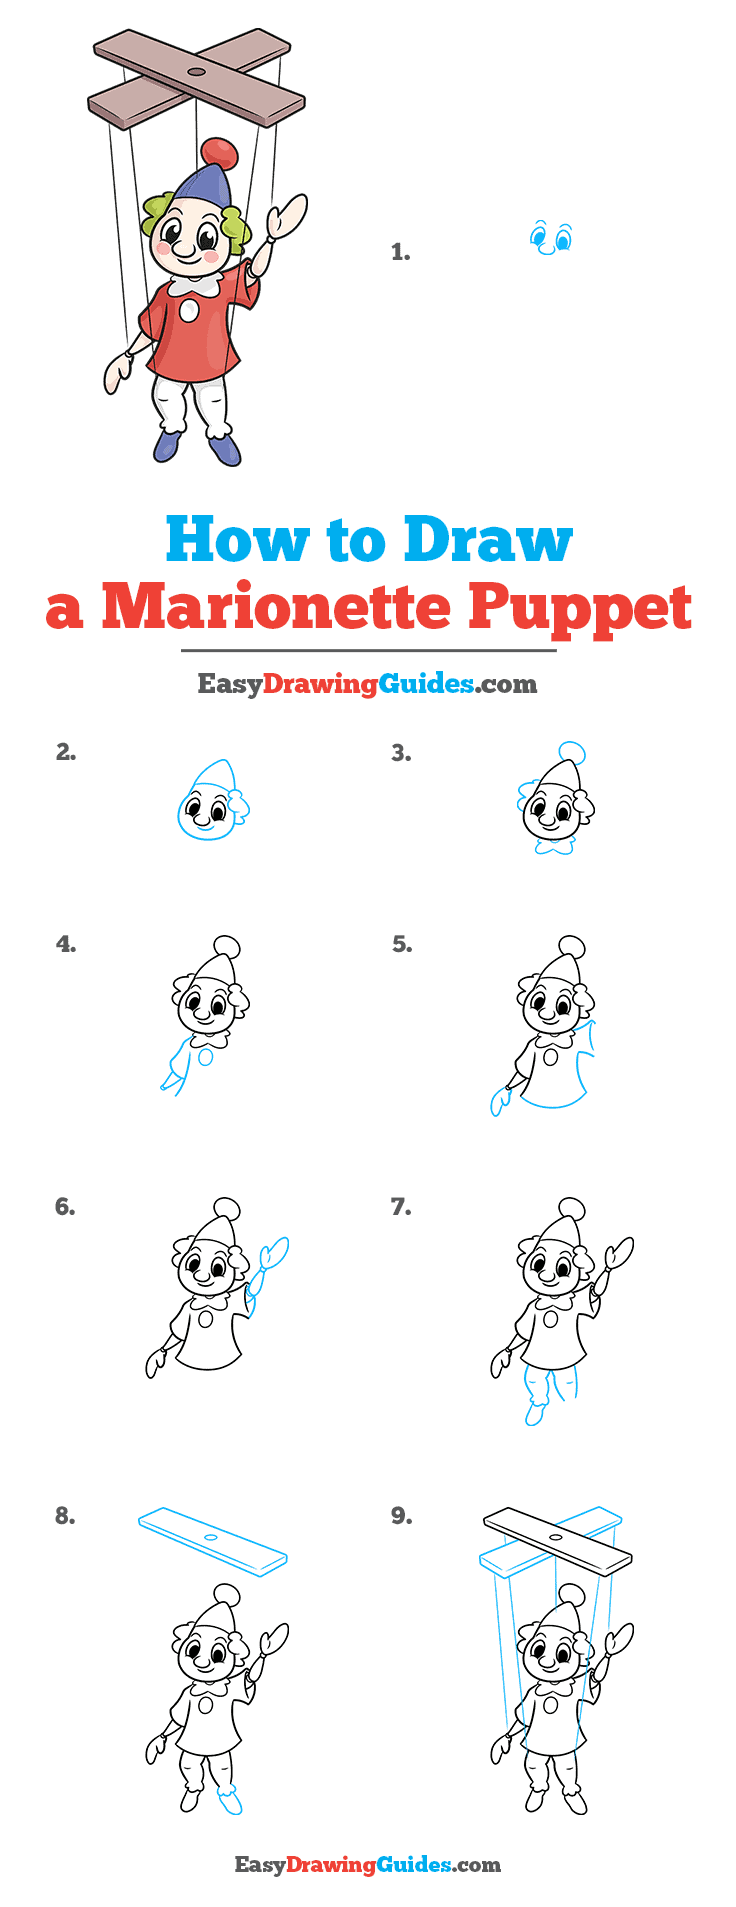 How to Draw a Marionette Puppet Step by Step Tutorial Image